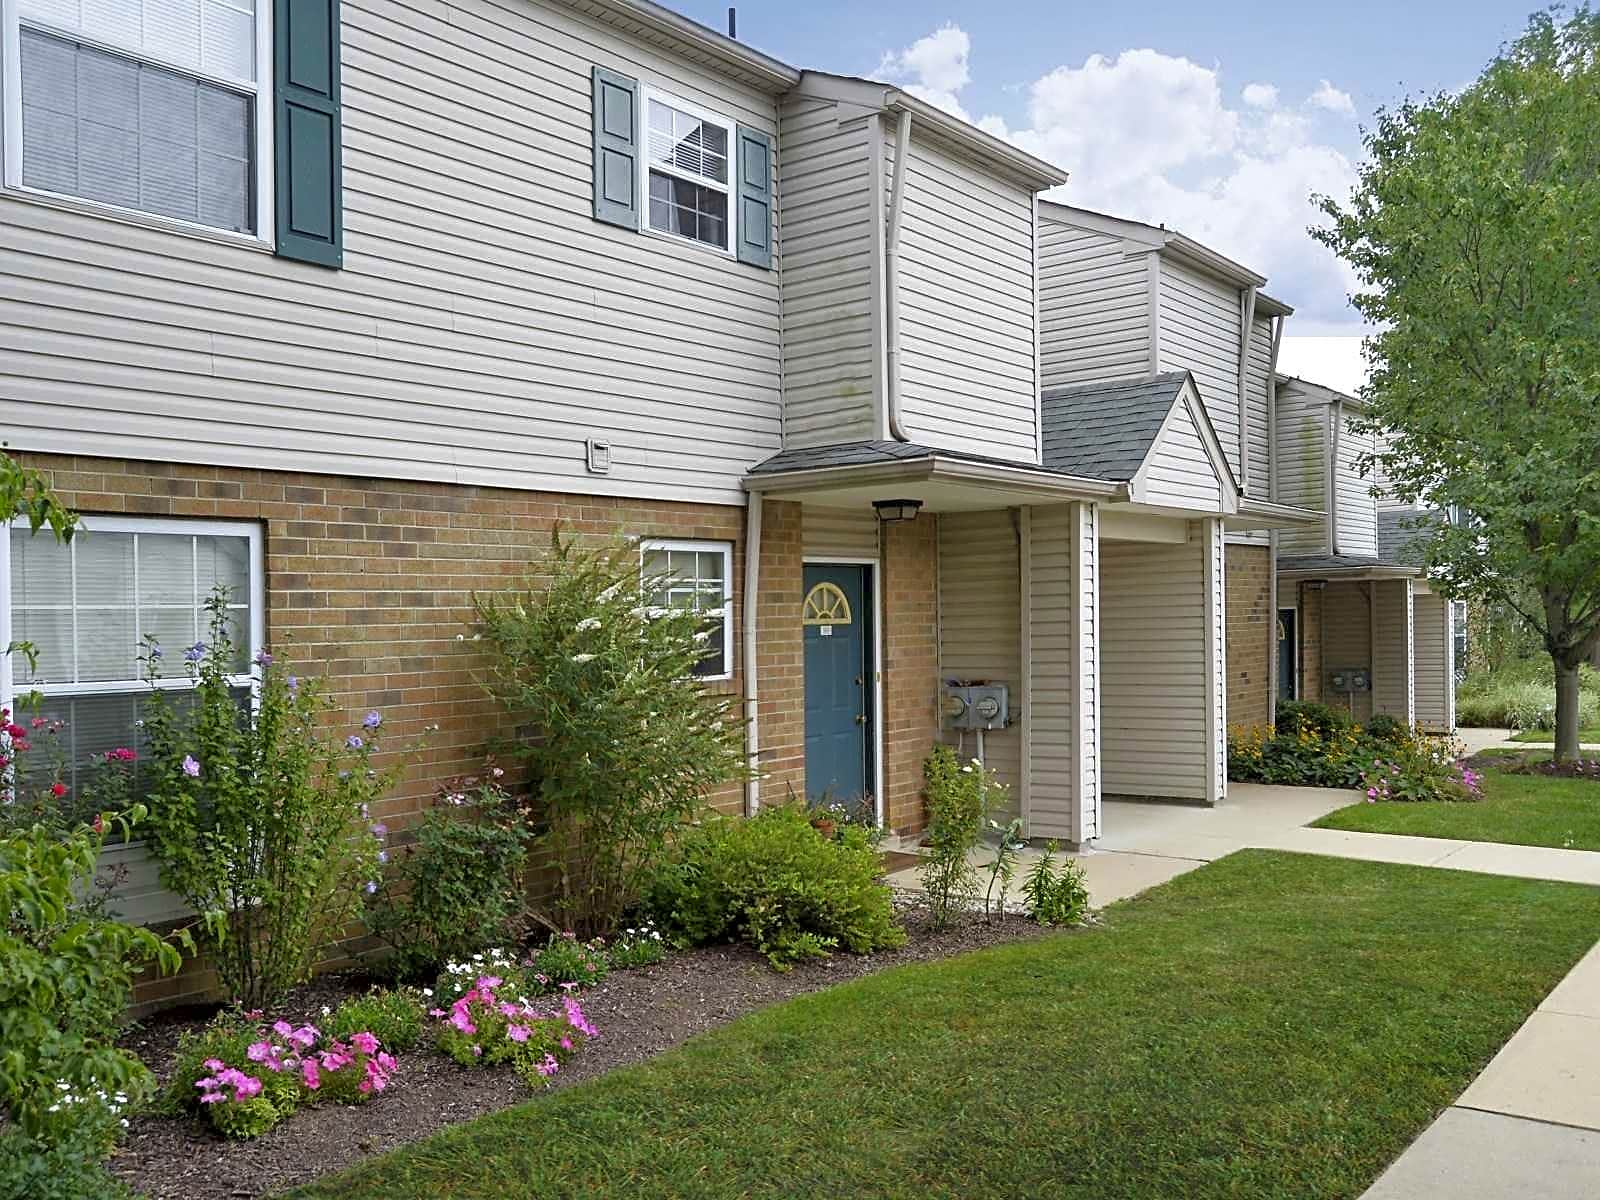 Apartments Near Penn St Great Valley Wyntre Brooke Apartments for Pennsylvania State University Great Valley Students in Malvern, PA